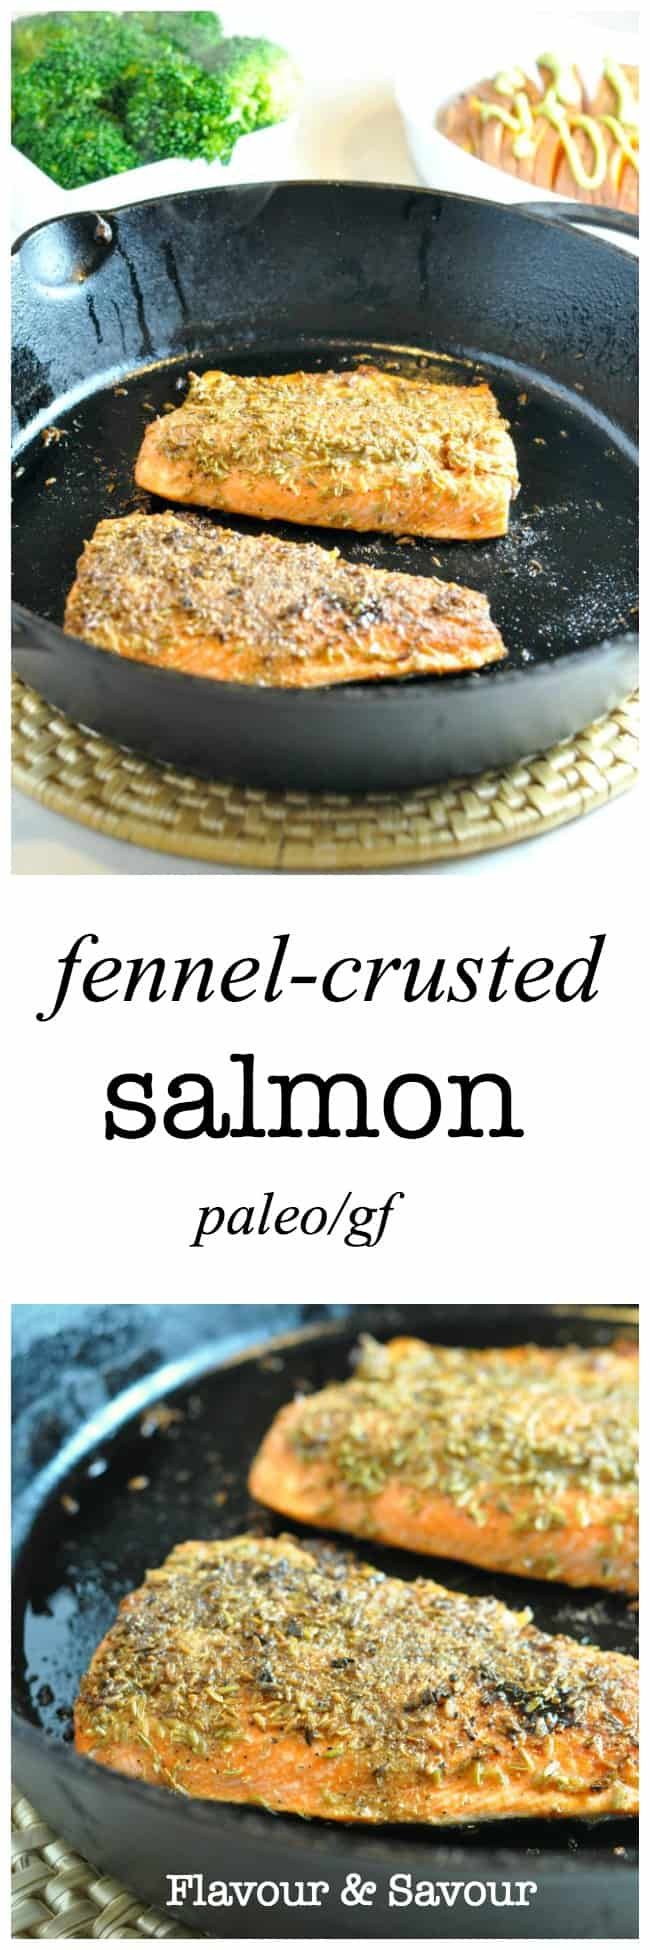 Paleo Fennel-Crusted Salmon. A fast but fancy meal, ready in less than 30 minutes. |www.flavourandsavour.com